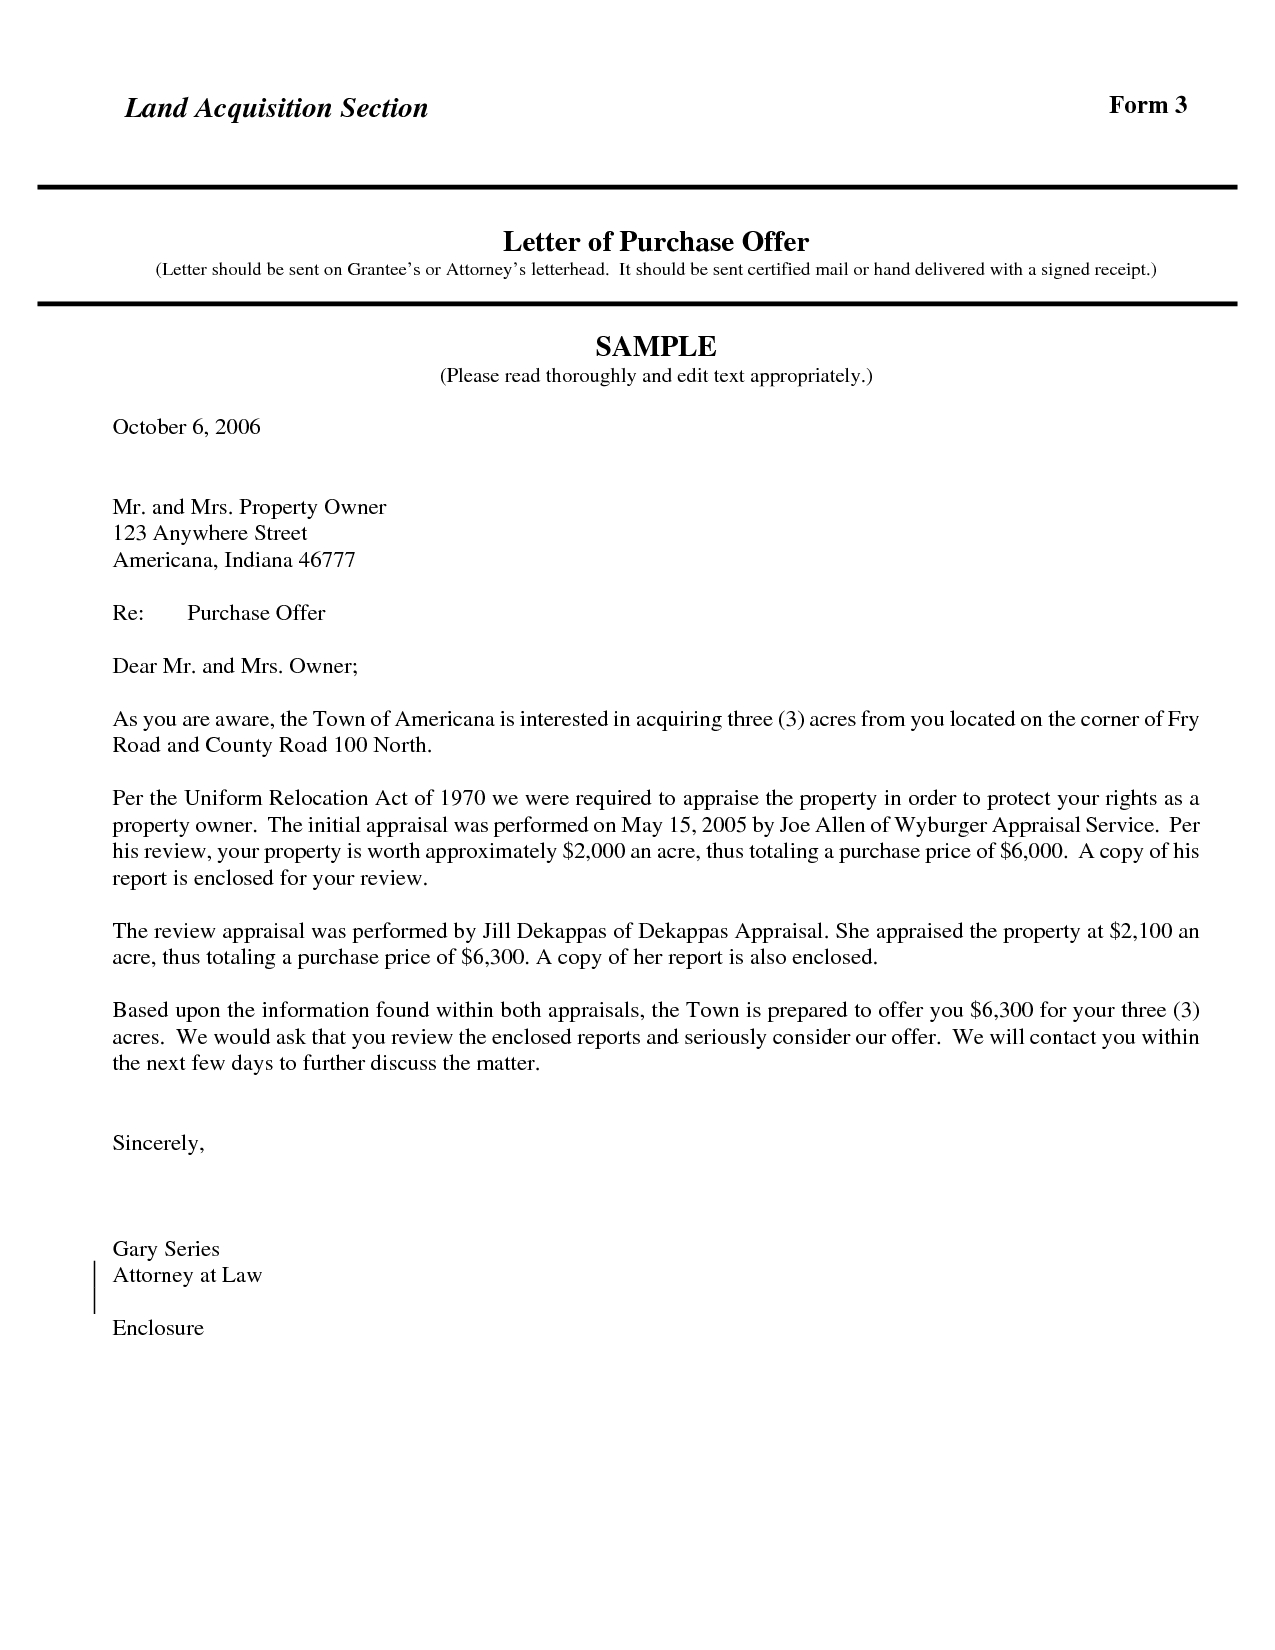 Letter Of Intent to Purchase Land Template Examples | Letter Cover